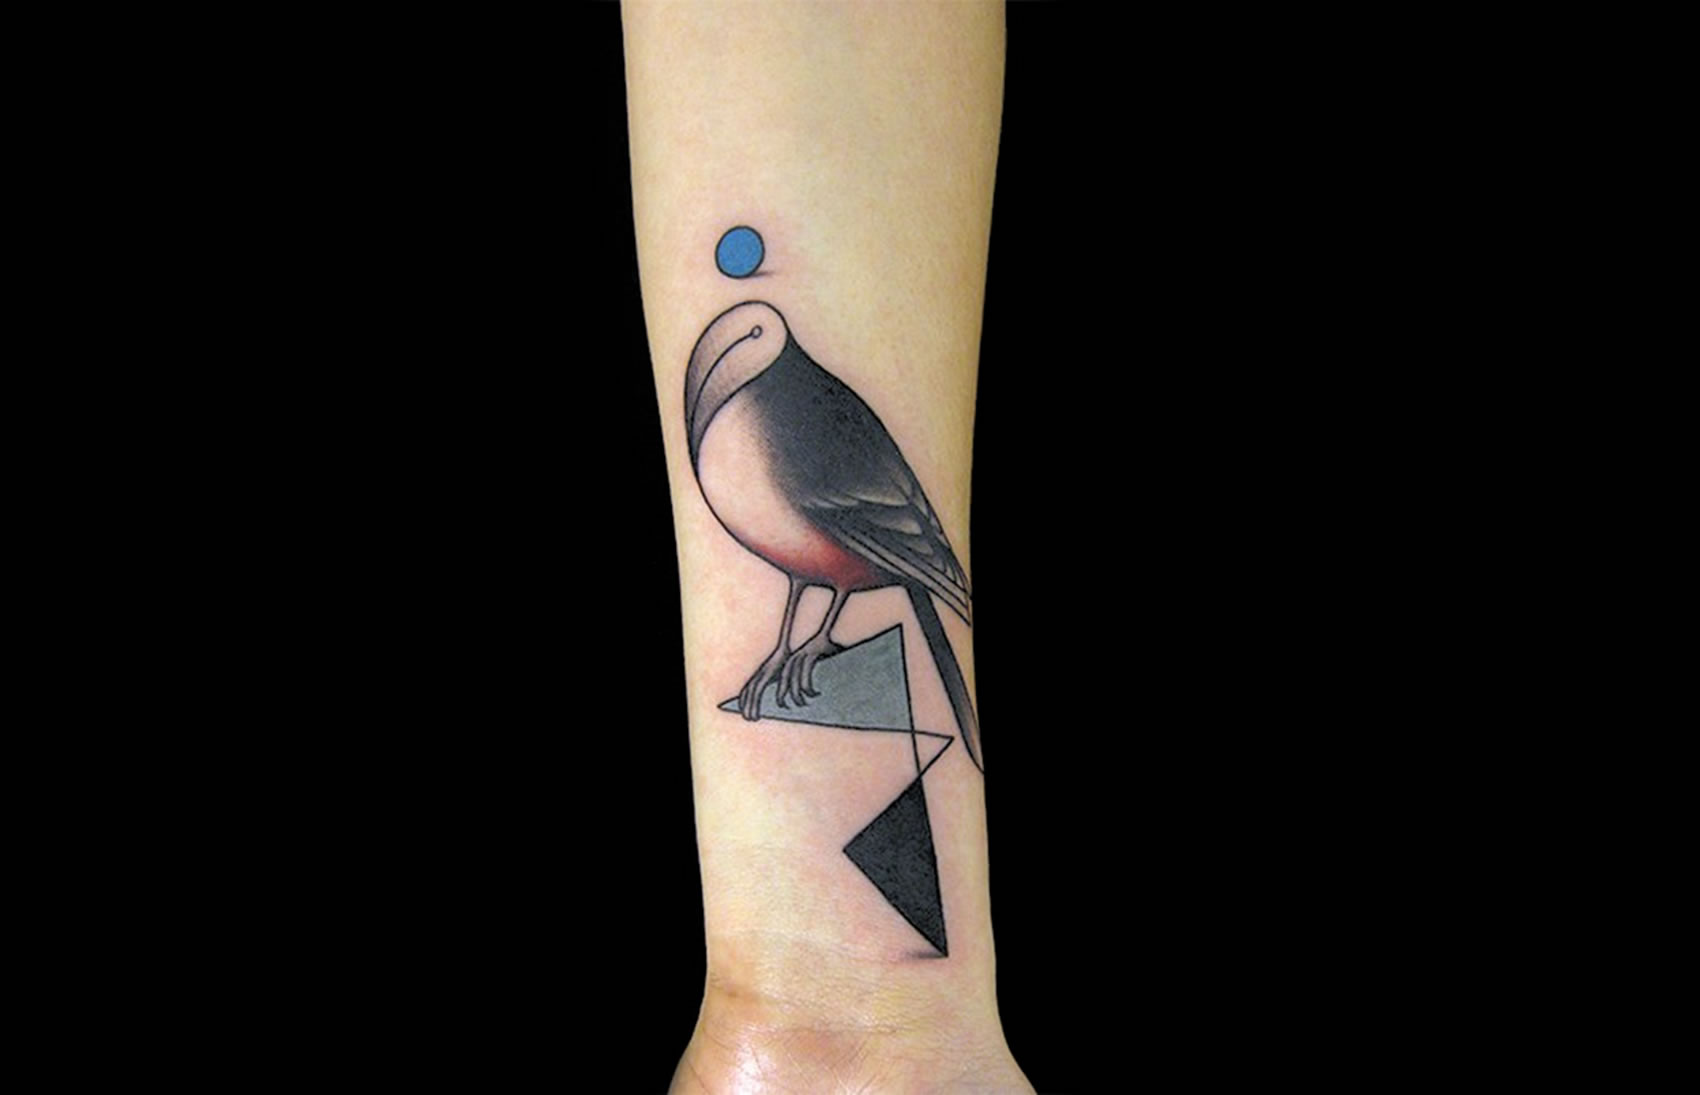 Tattoos: Modern Art Birds and Dreams